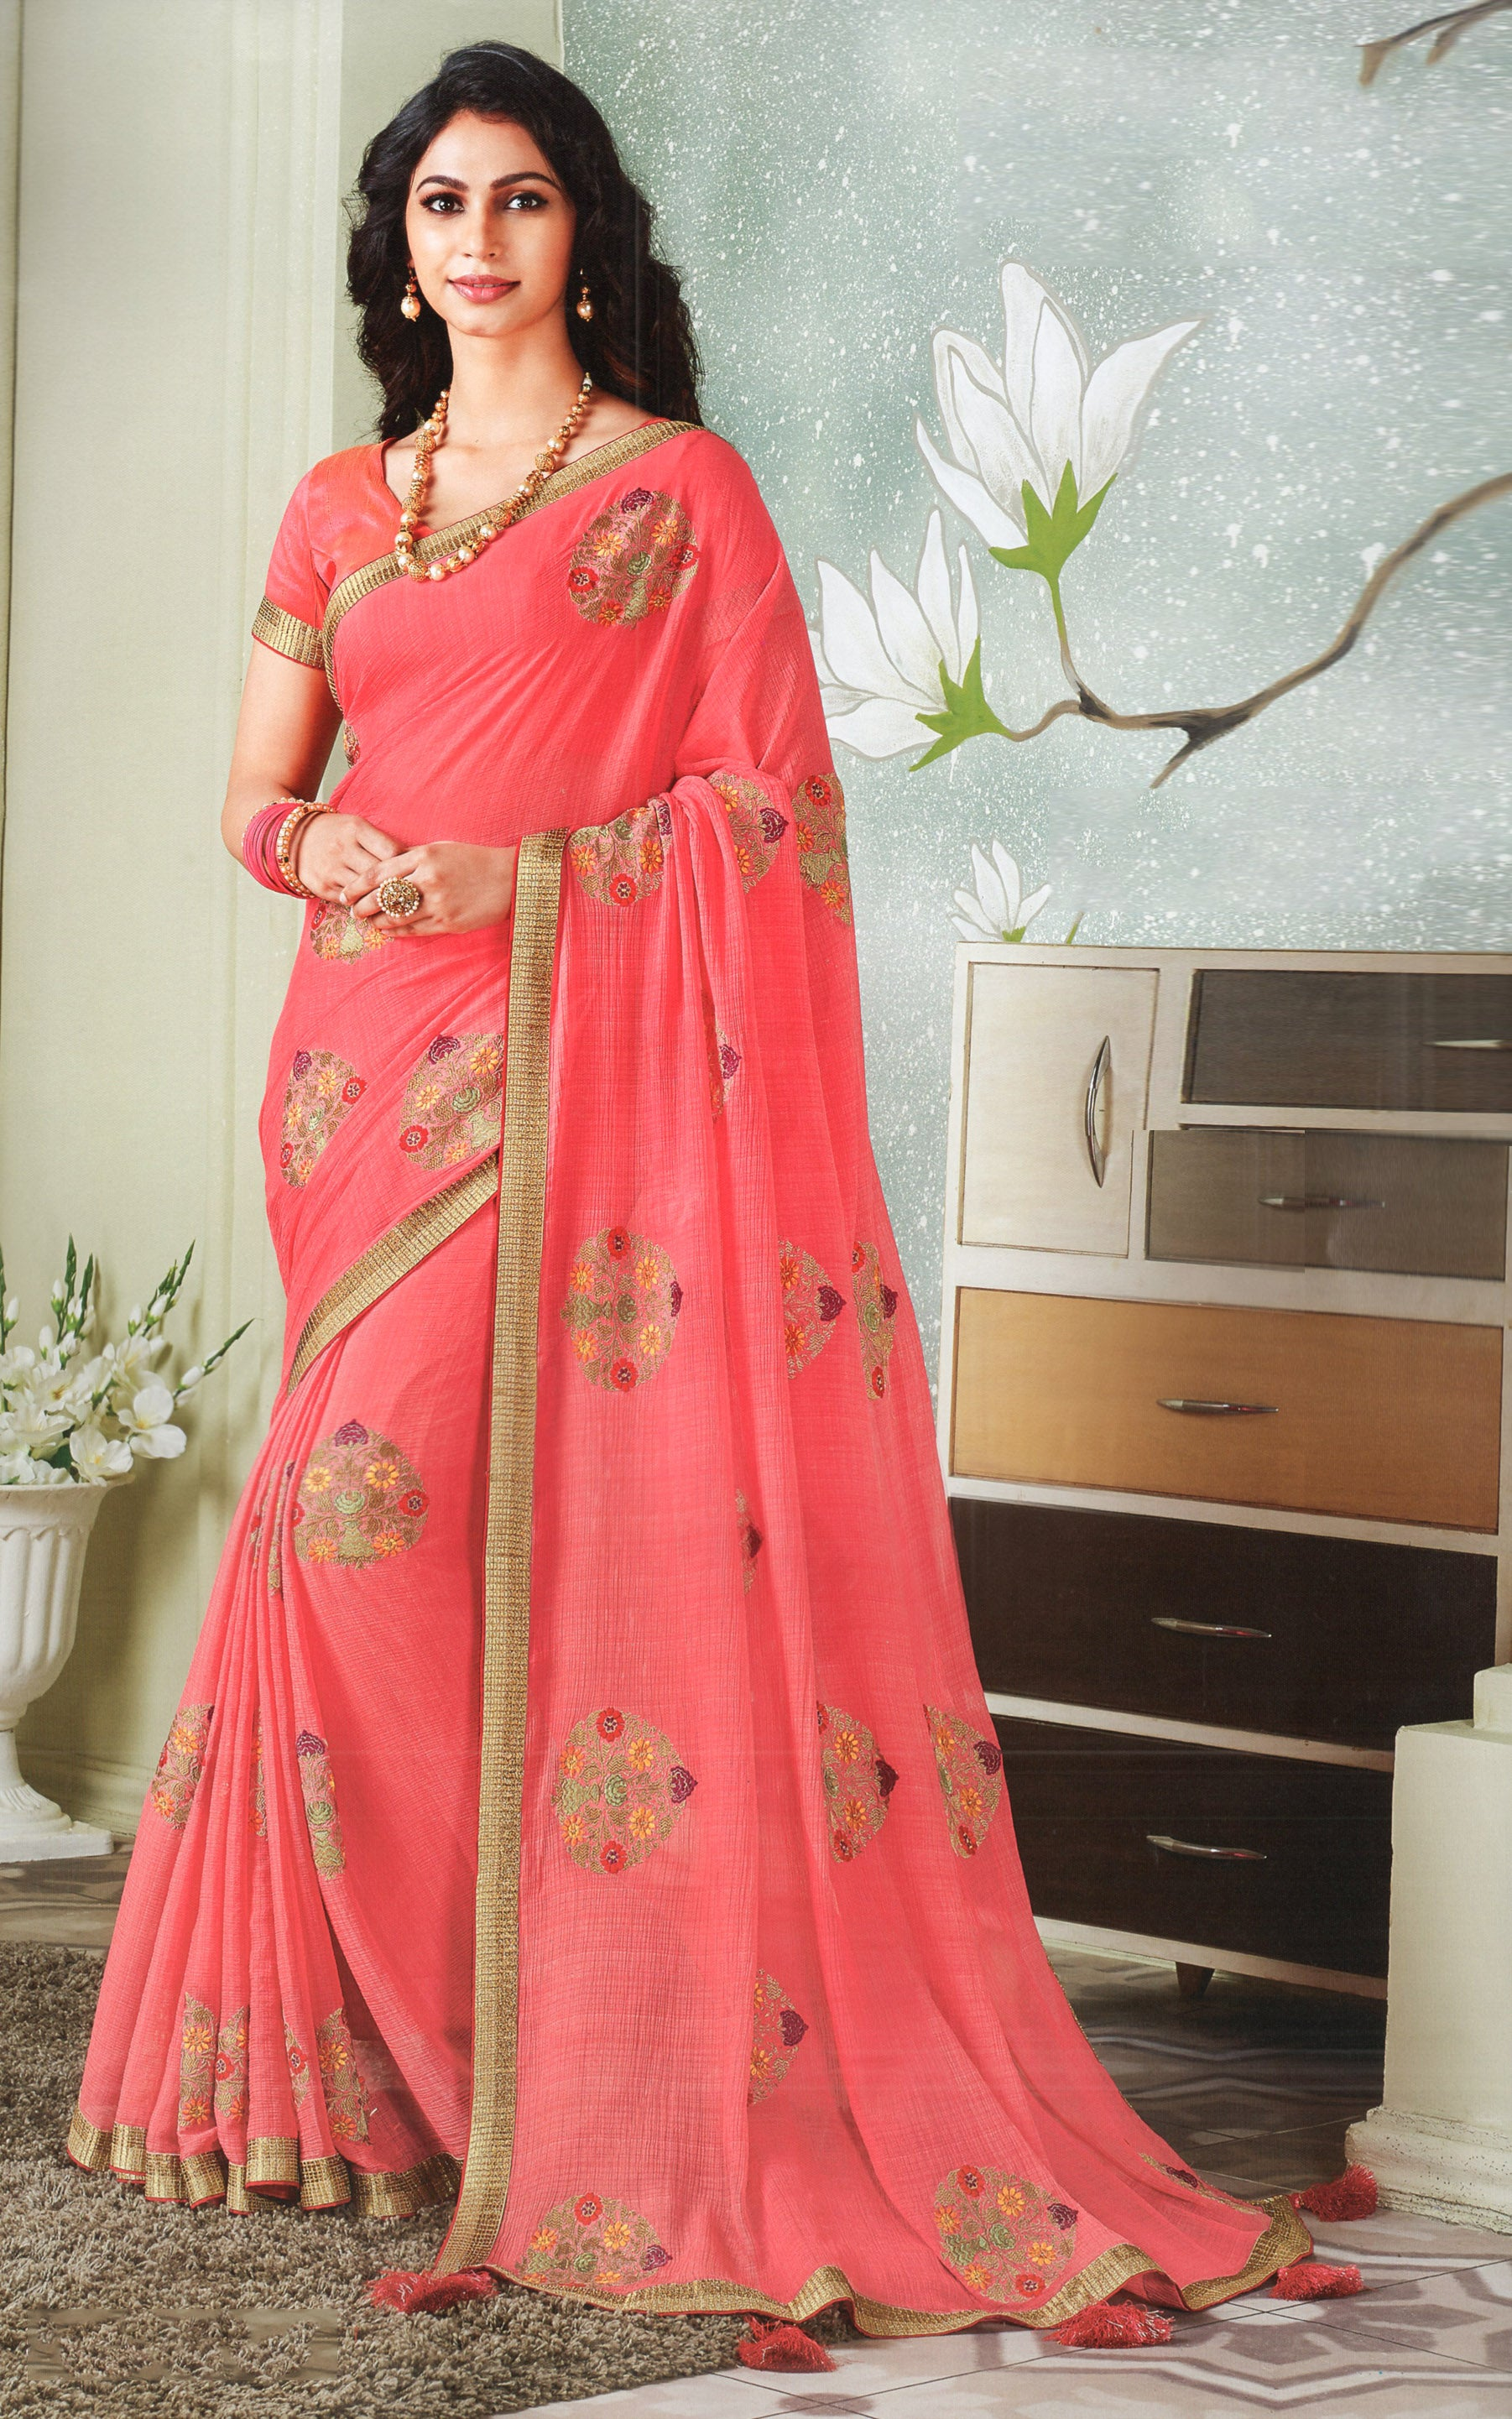 Laxmipati Cham Cham Embroidered  Chiffon  Saree With Blouse Piece  (Pink) By Indians Boutique